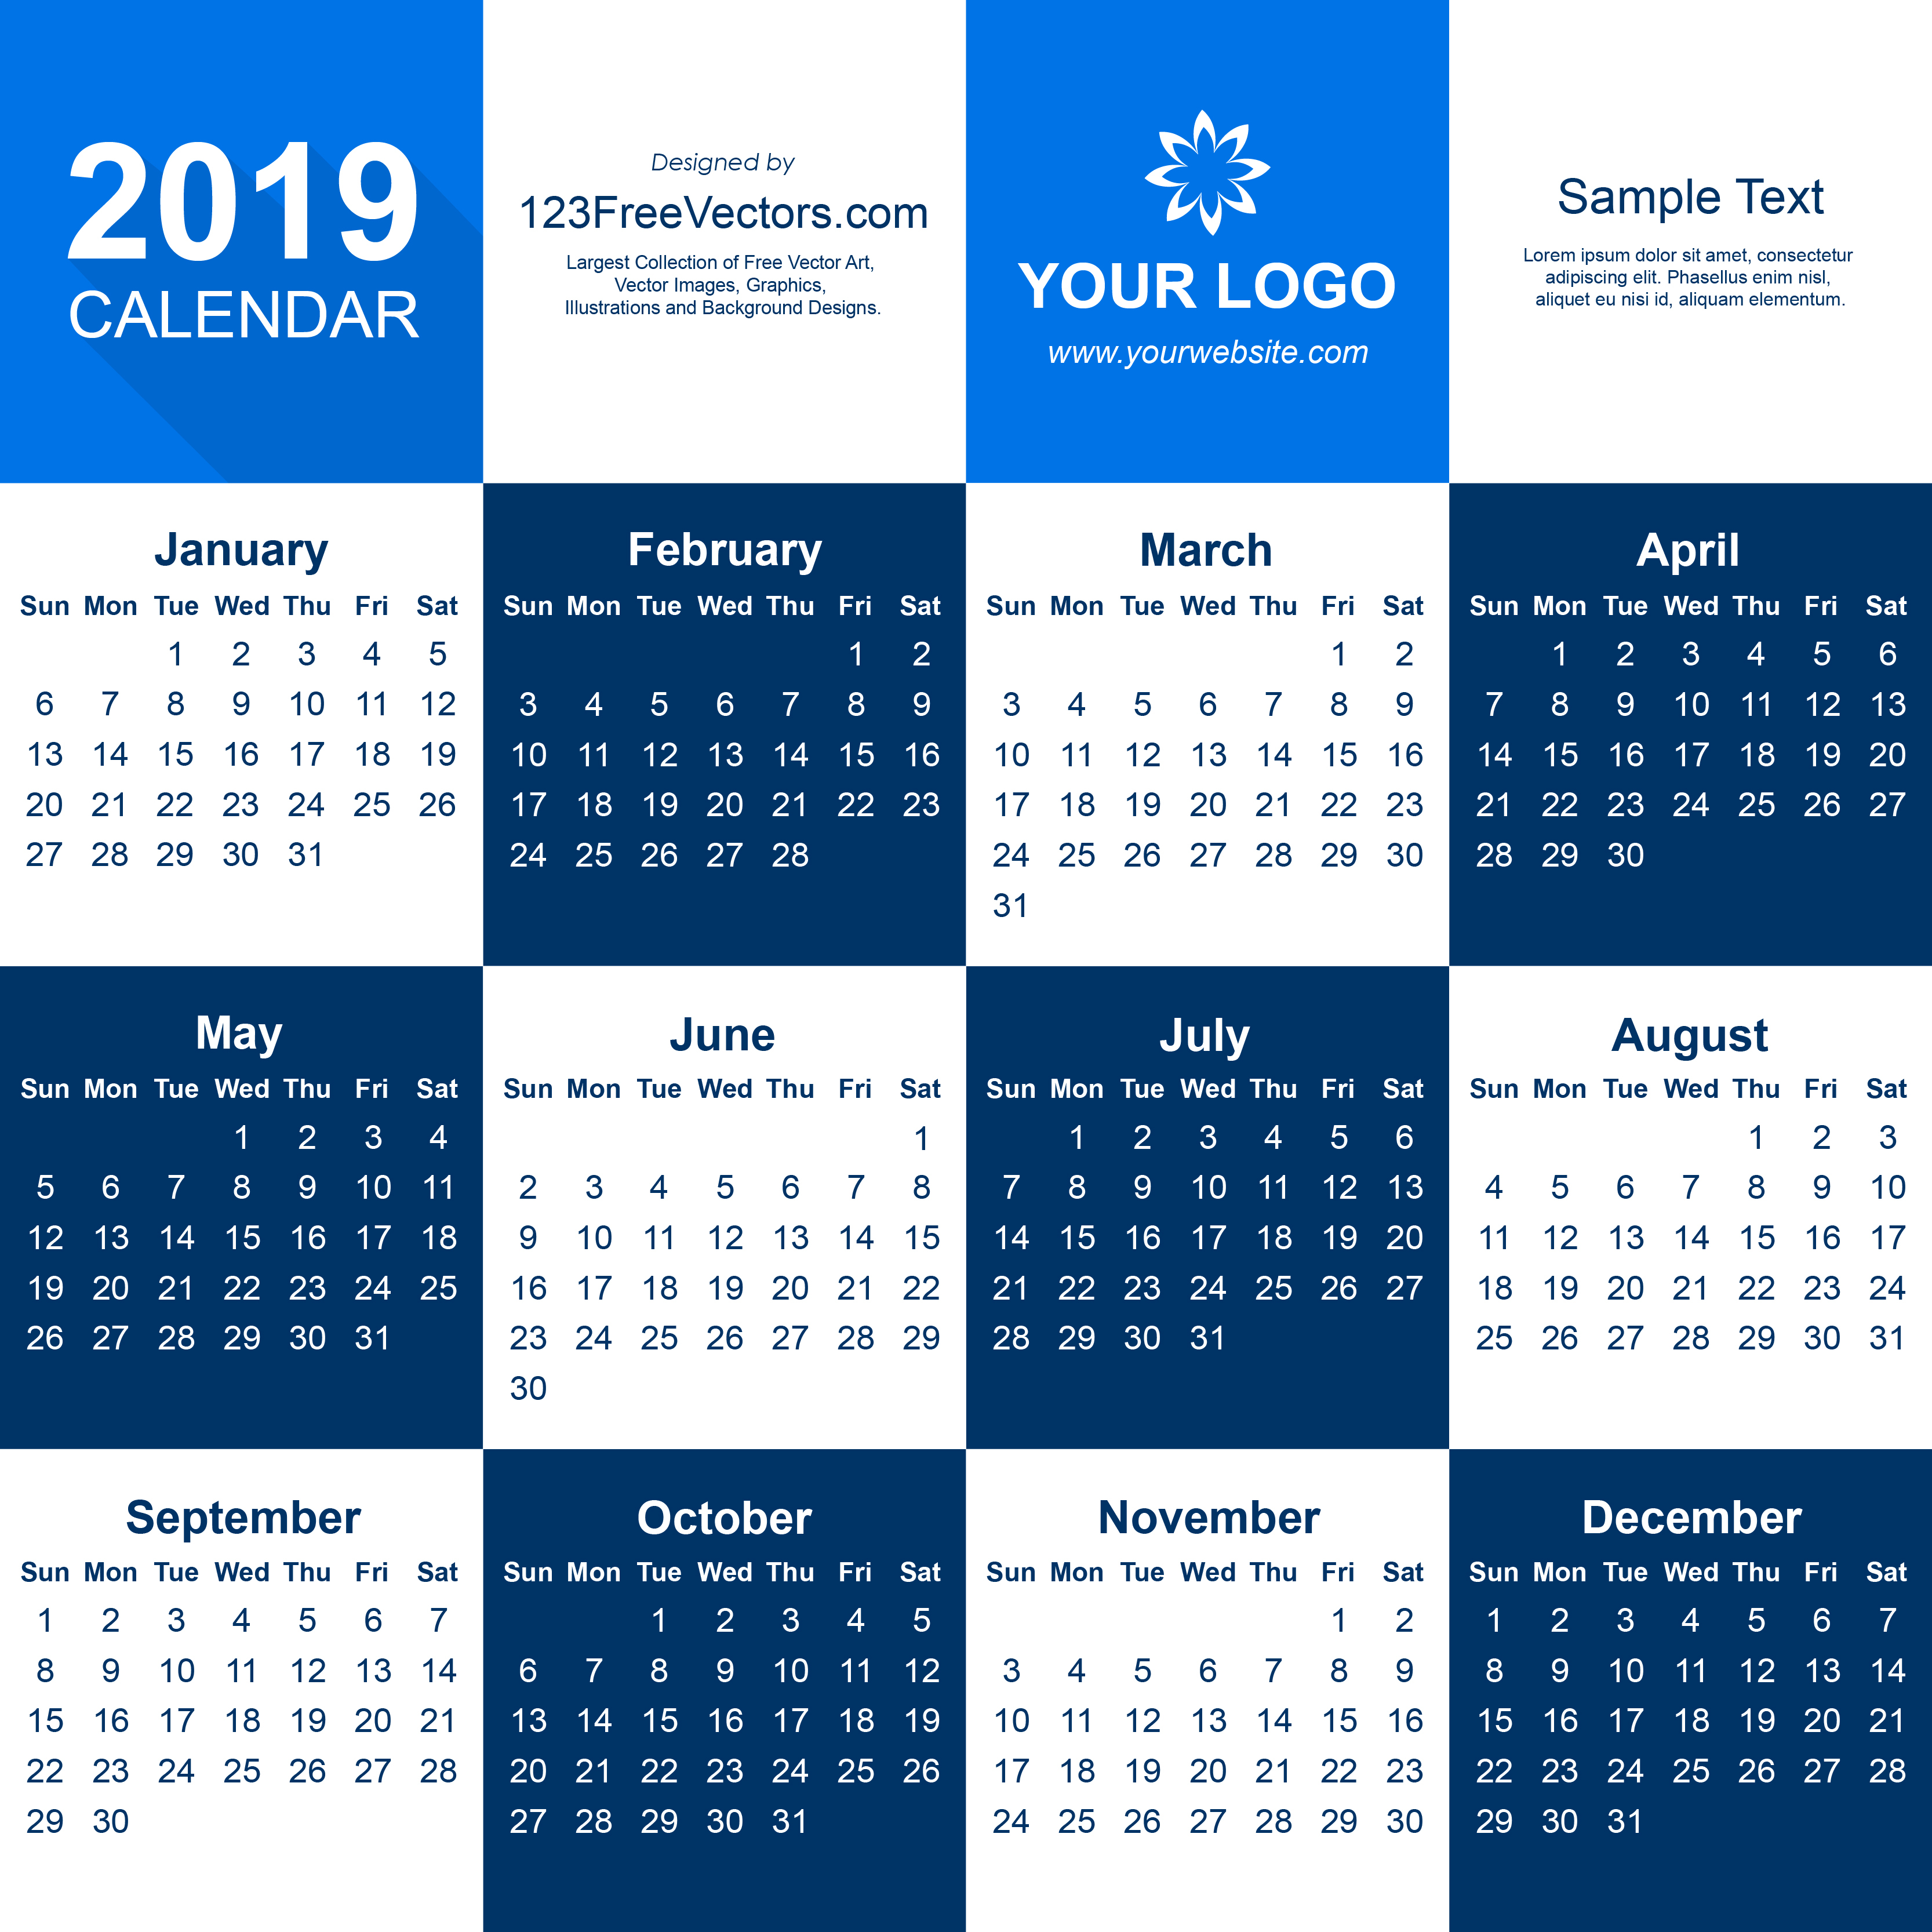 2019 Calendar Illustrator Template pertaining to Printable Free August Calendar Template With Clown